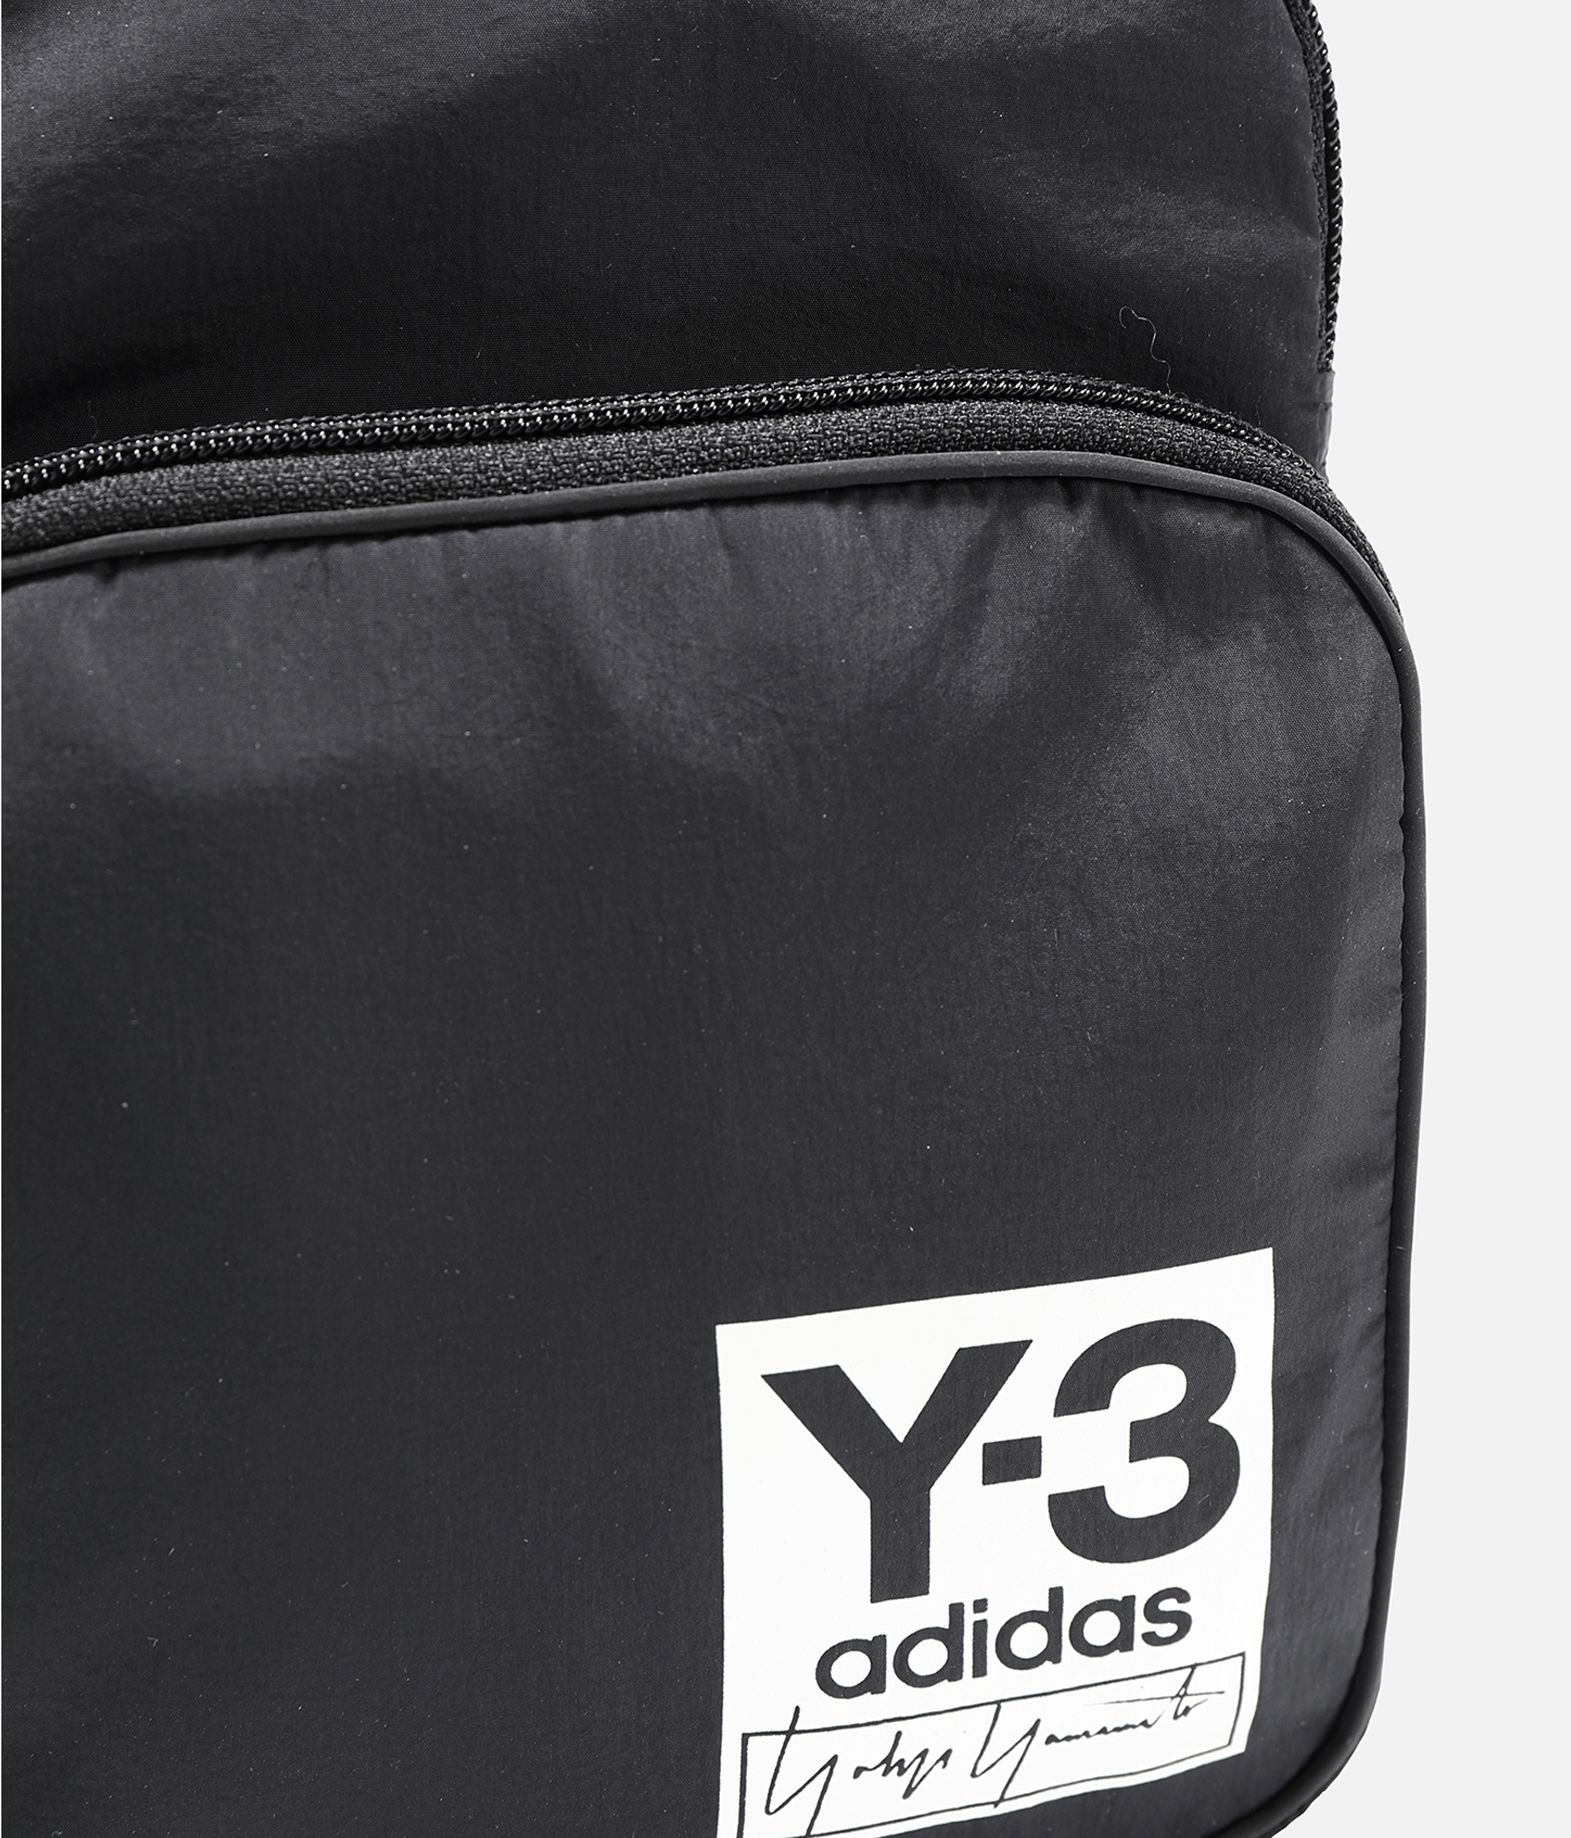 Y-3 Y-3 Packable Airliner Bag ショルダーバッグ E a